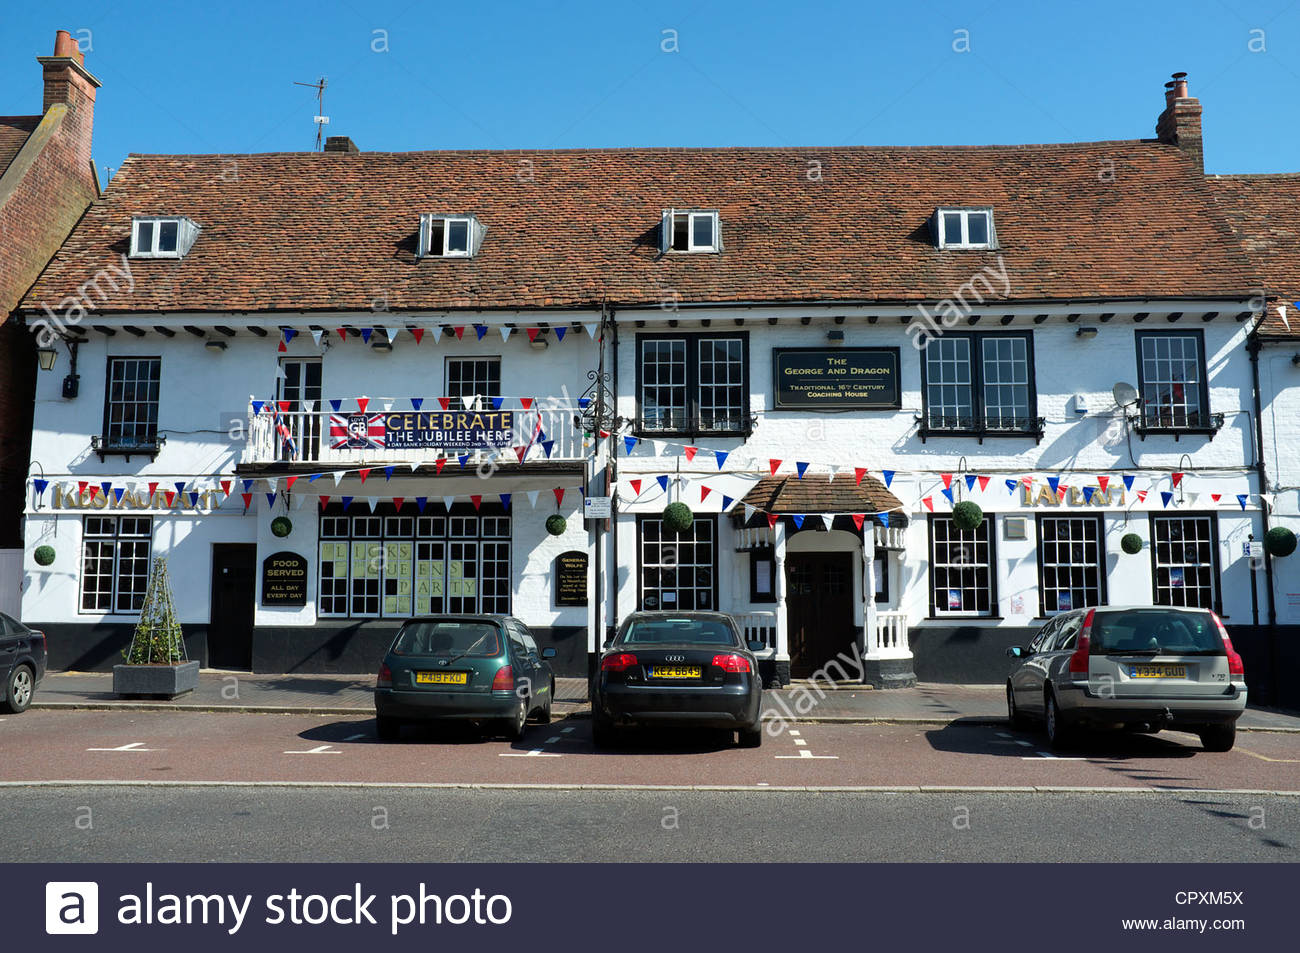 The George and Dragon public house in Westerham in Kent, UK. - Stock Image